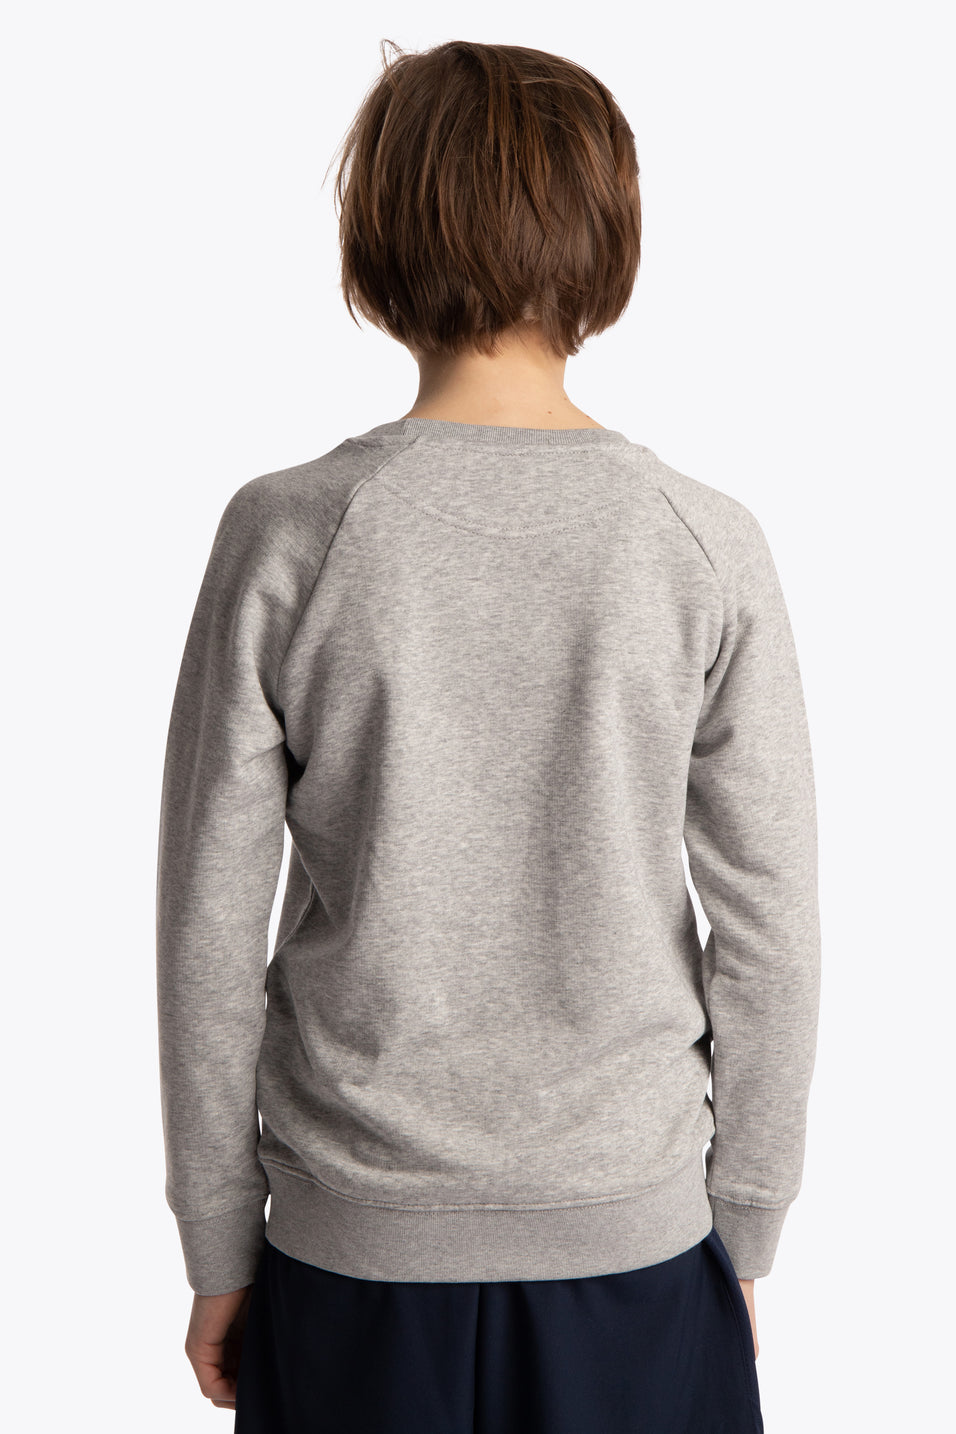 Osakaworld kids sweater